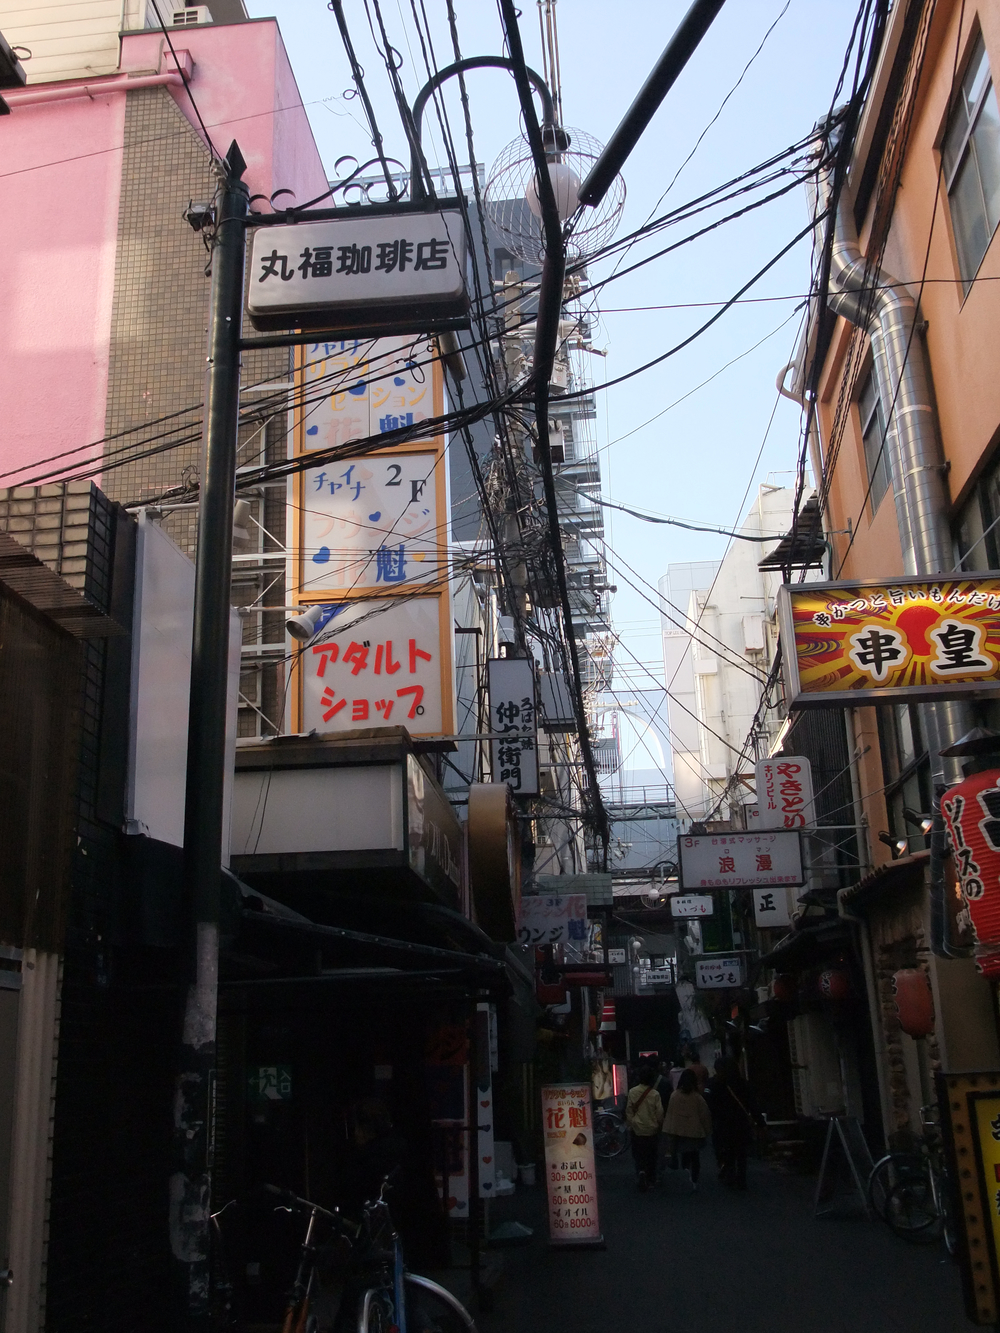 A side street in Dōtonbori